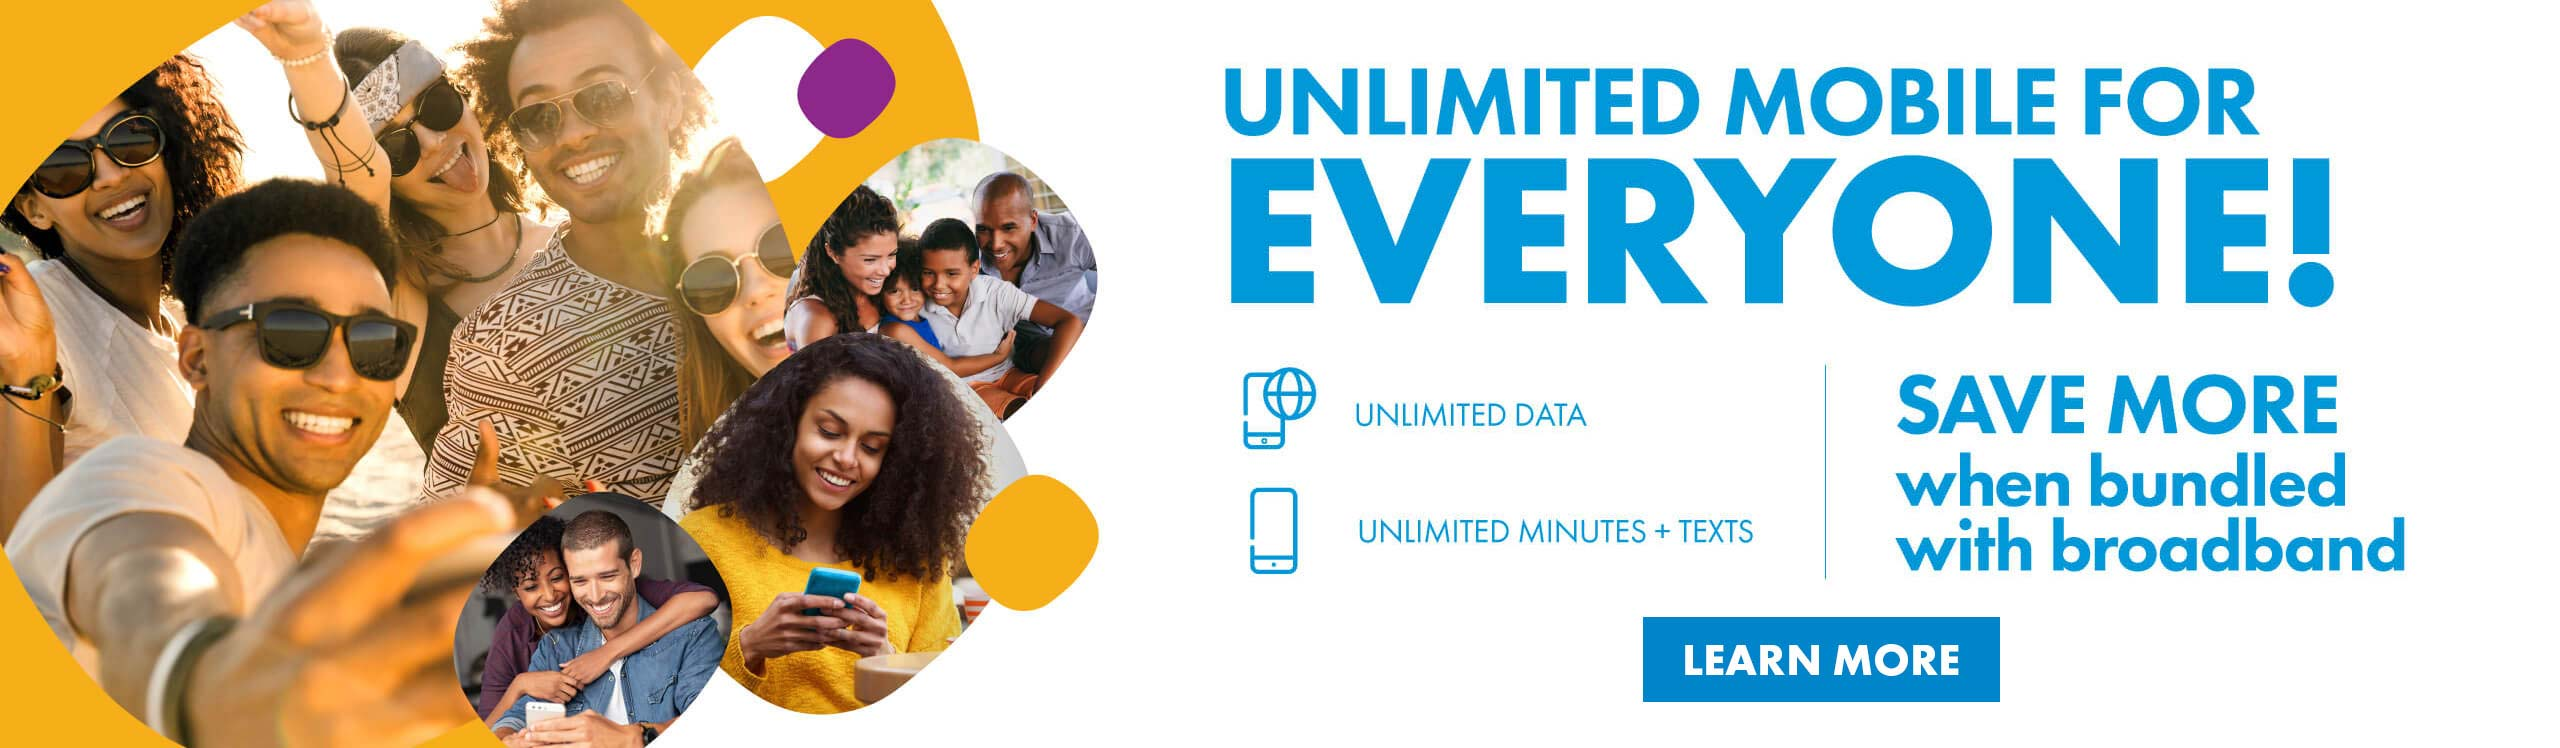 UNLIMITED MOBILE FOR EVERYONE! SAVE MORE when bundled with broadband